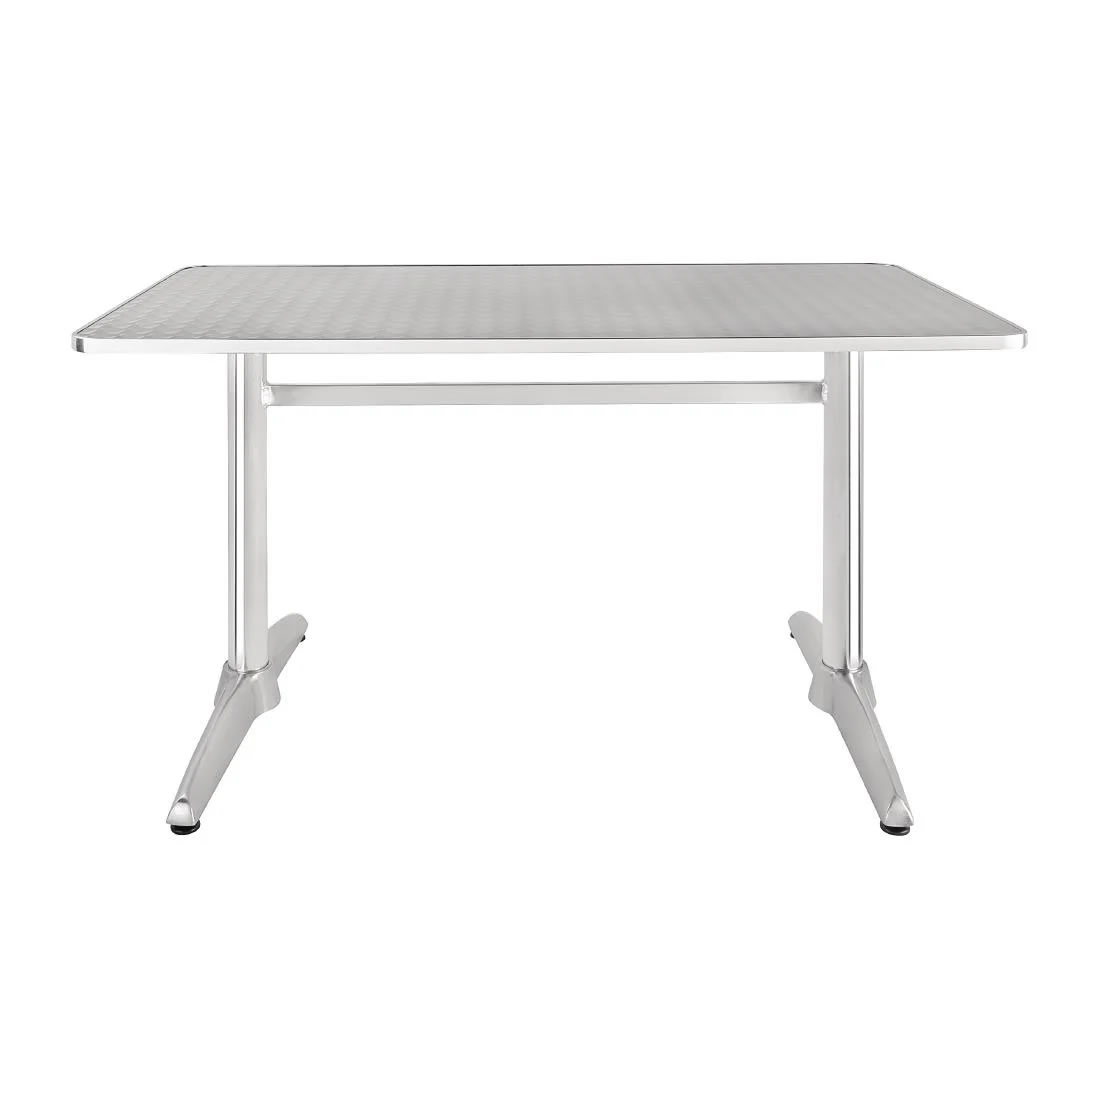 Jerica Stainless Steel Bistro Or Garden Table Double Pedestal